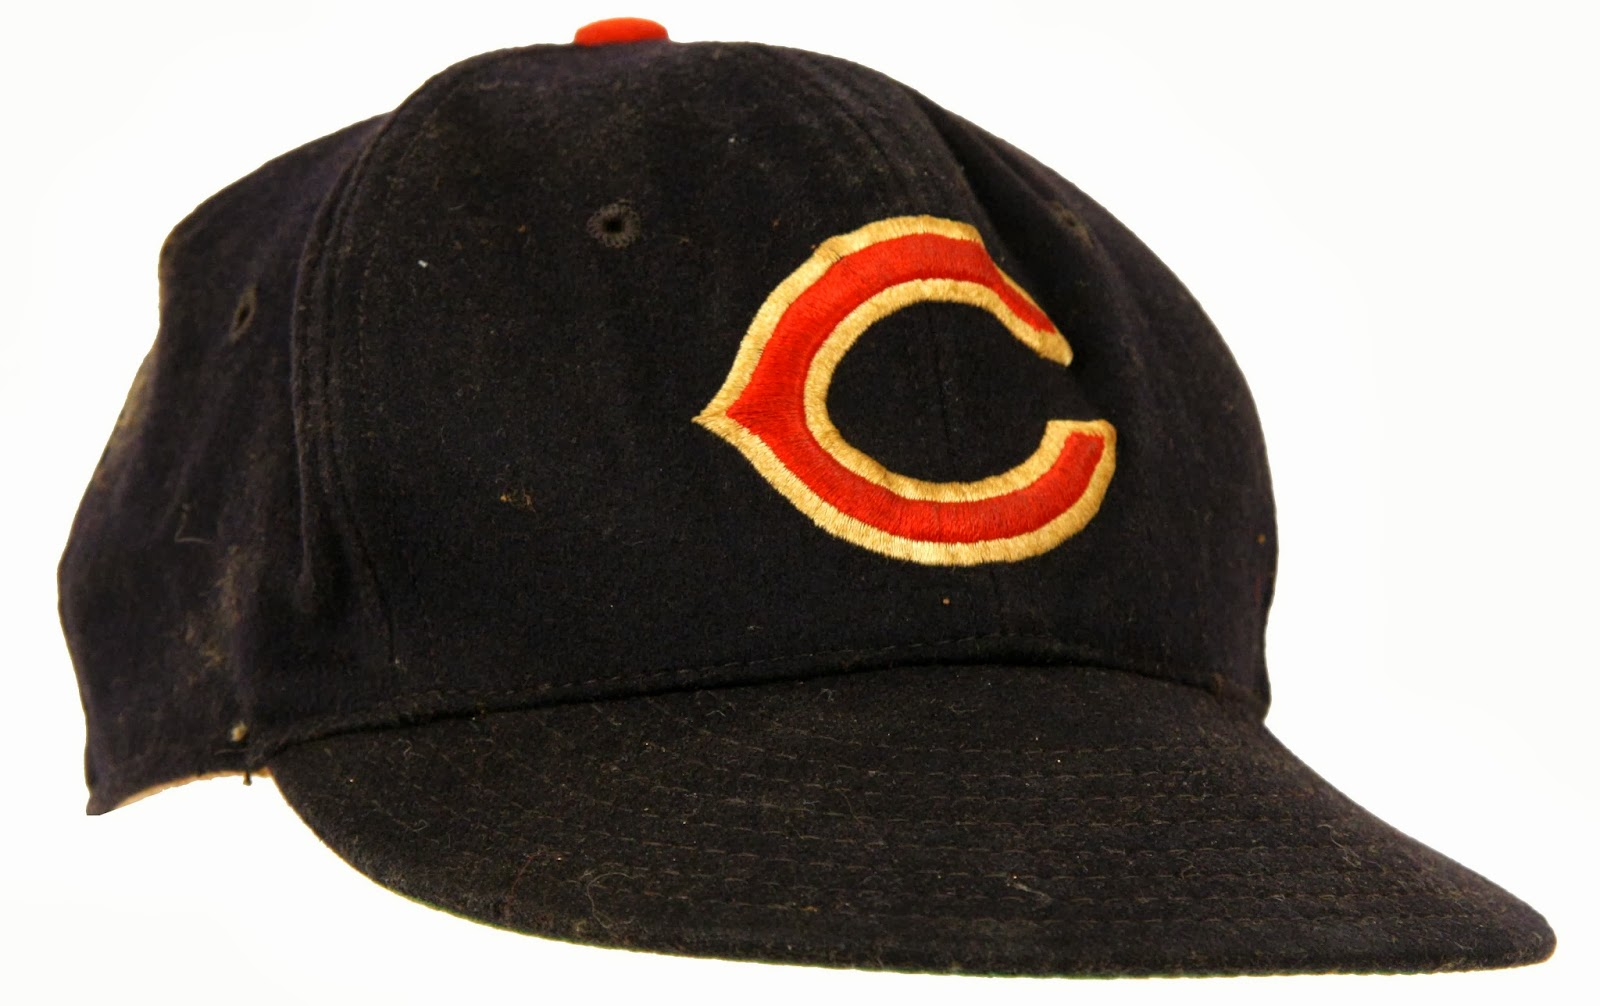 The Ballcap Review The Cleveland Indians Sometimes Road Cap